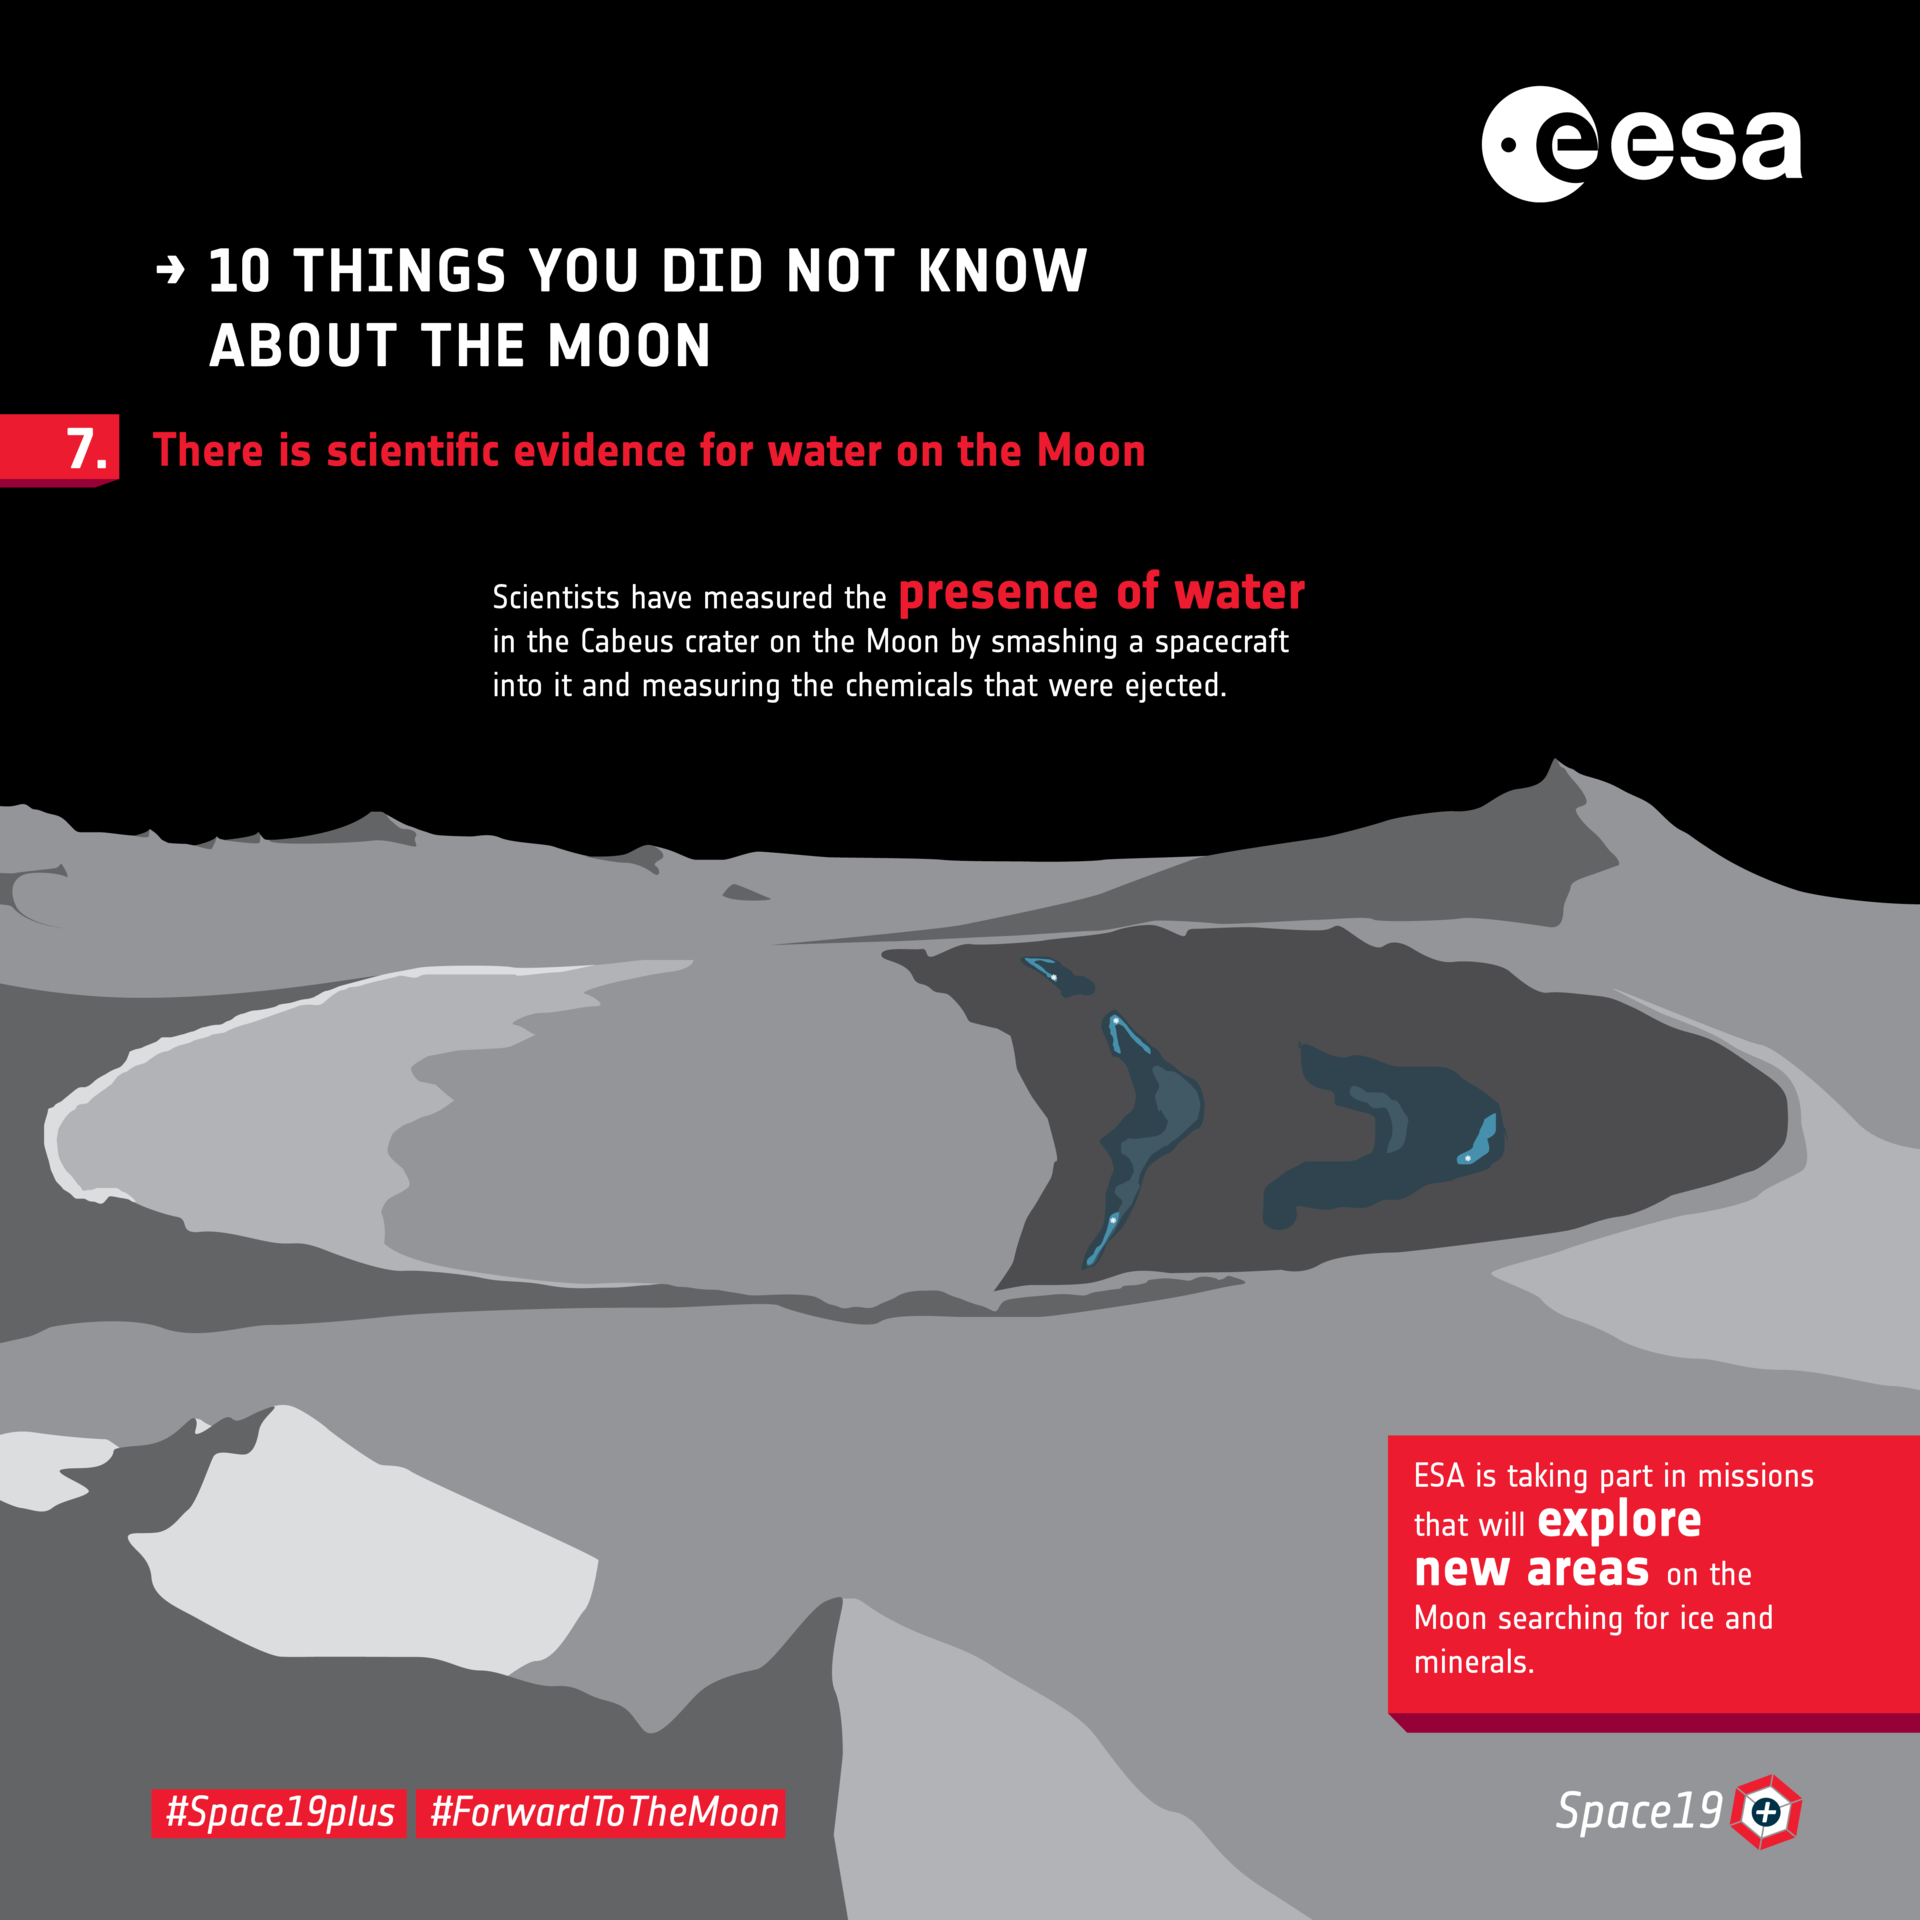 Ten things you did not know about the Moon: 7. Water